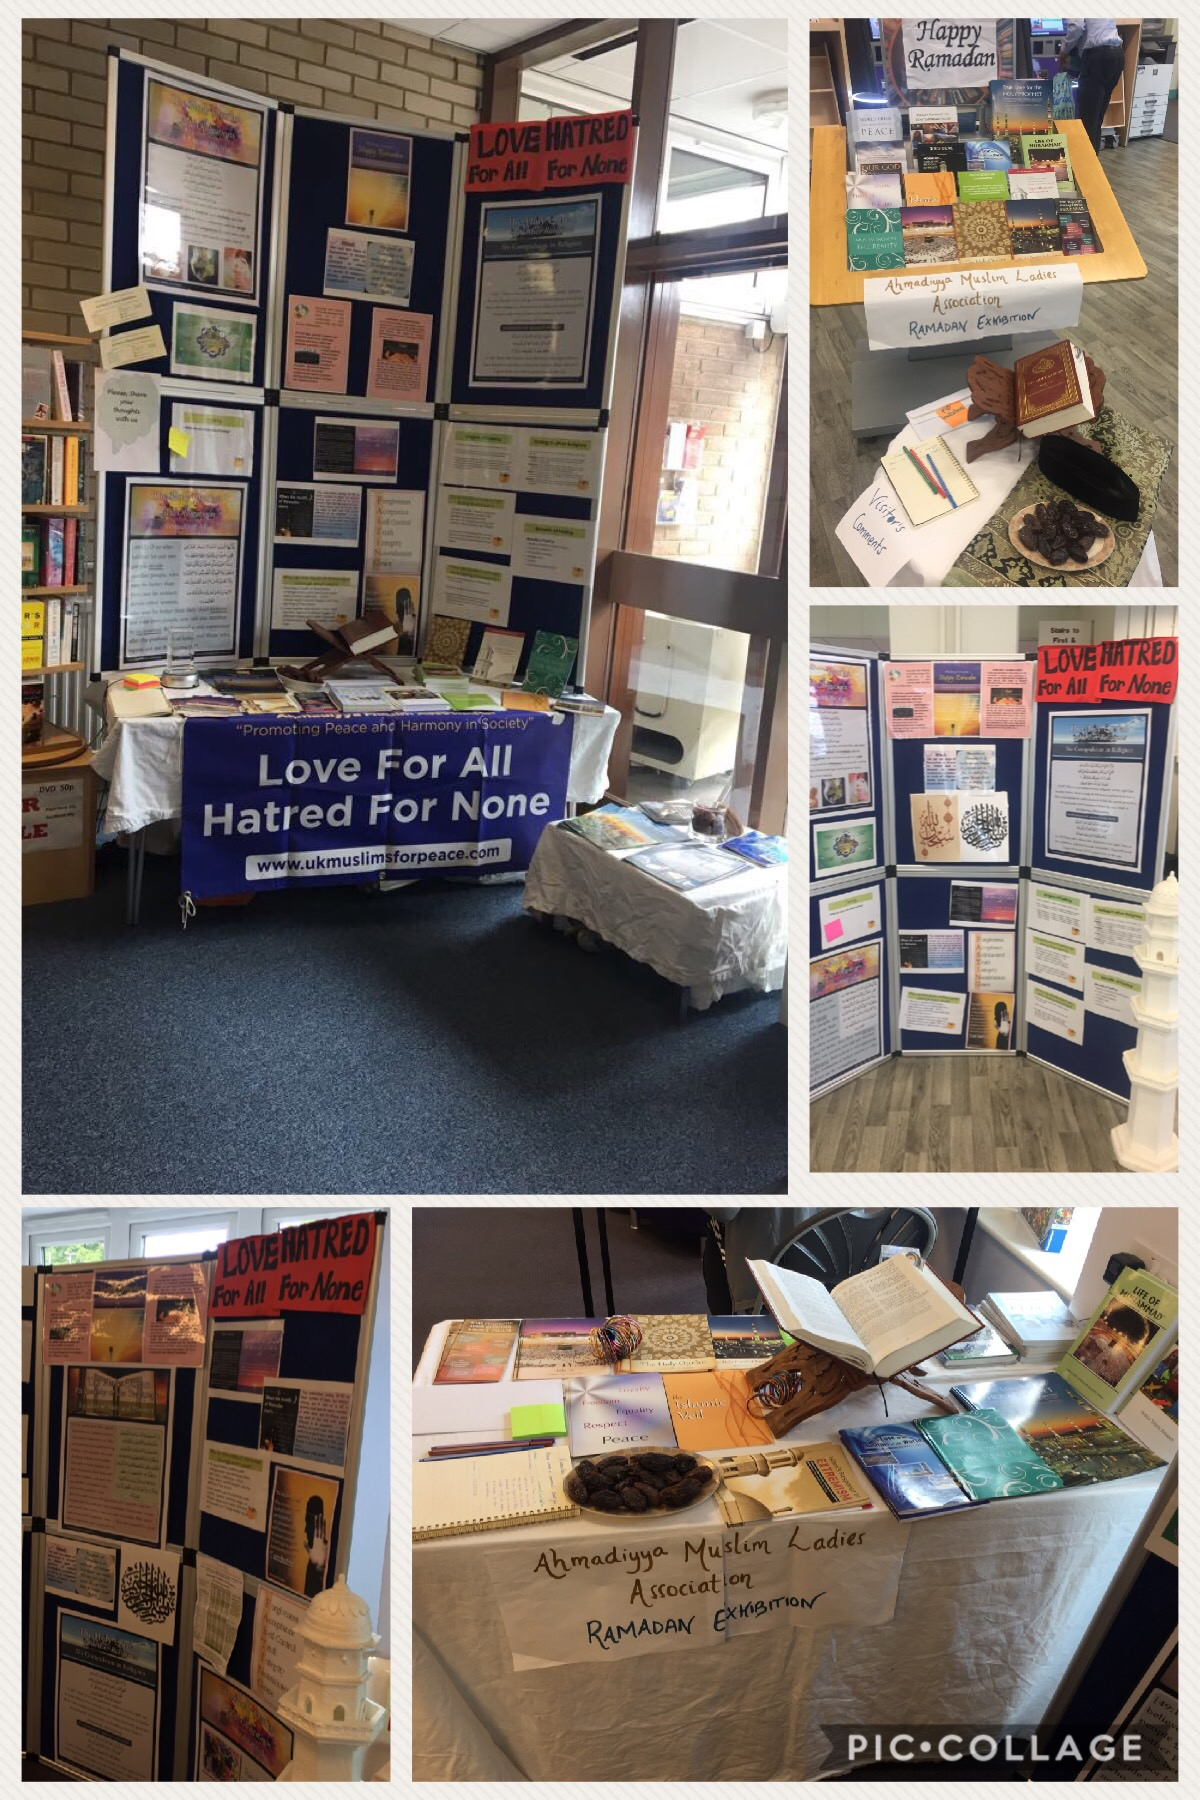 Spreading message of peace across Merton Libraries